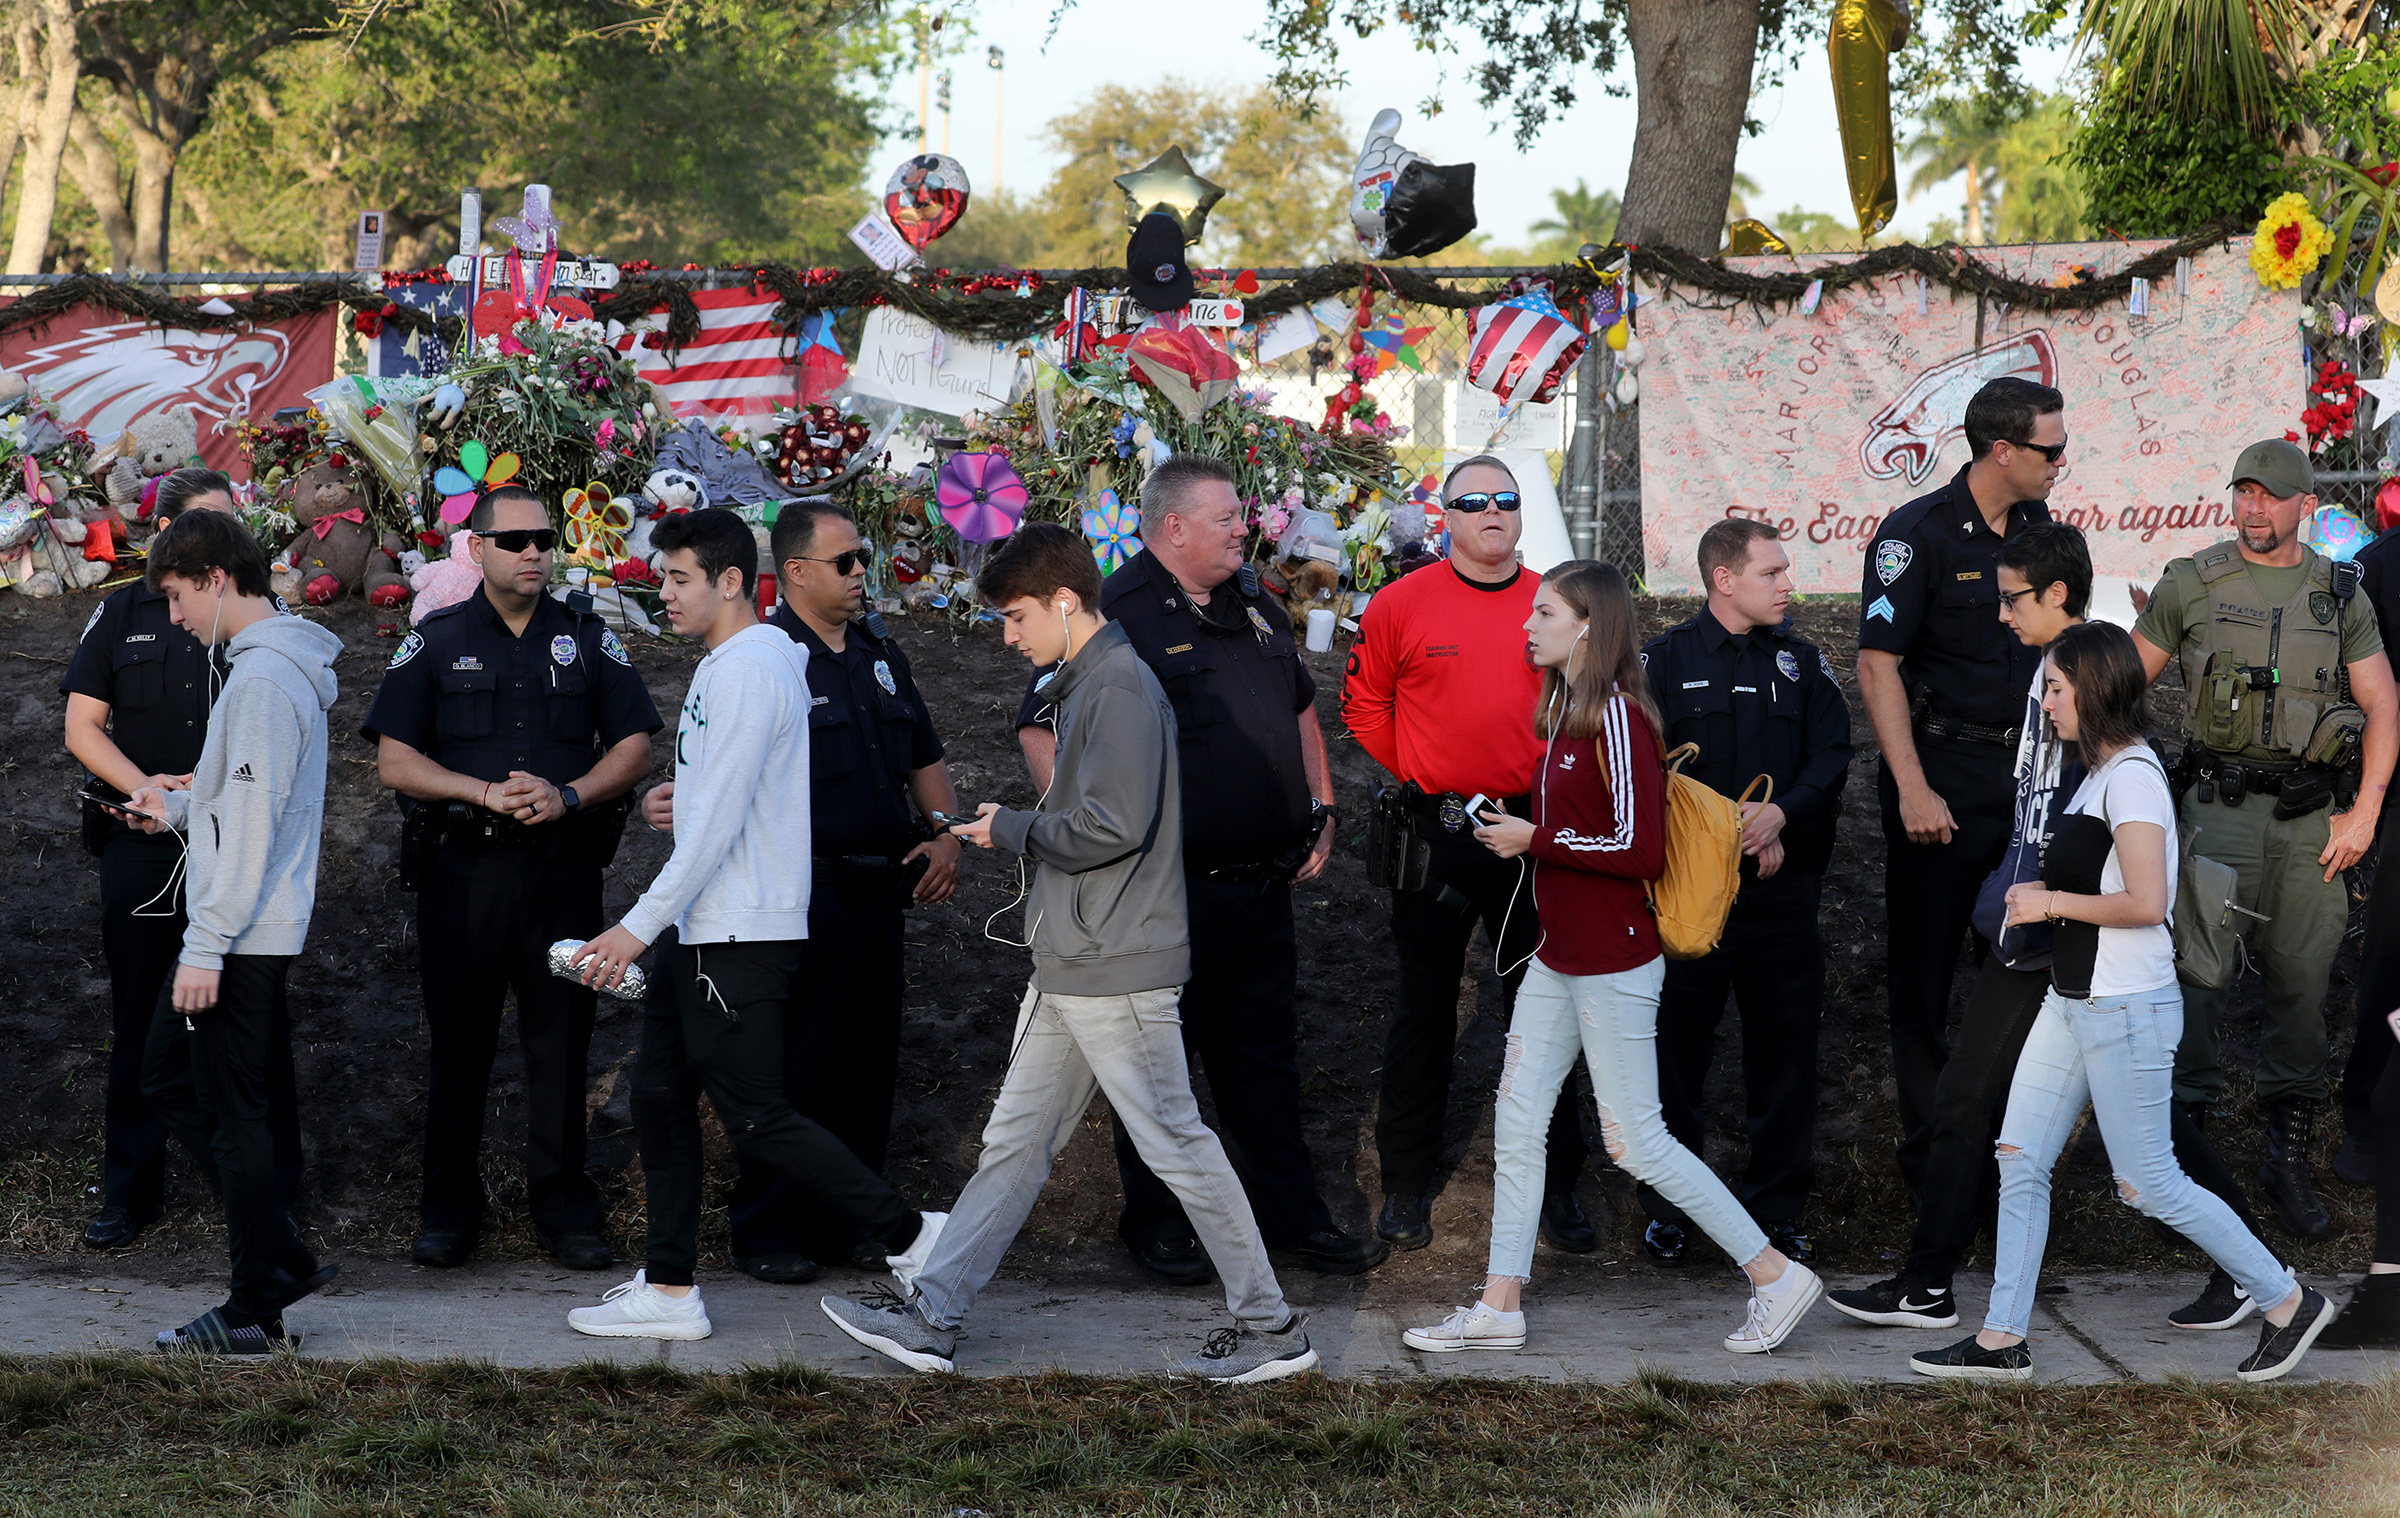 Students head back to school at Marjory Stoneman Douglas High School on Wednesday, Feb. 28, 2018 for the first time after a gunman killed 17 students in the school on Valentine's Day.